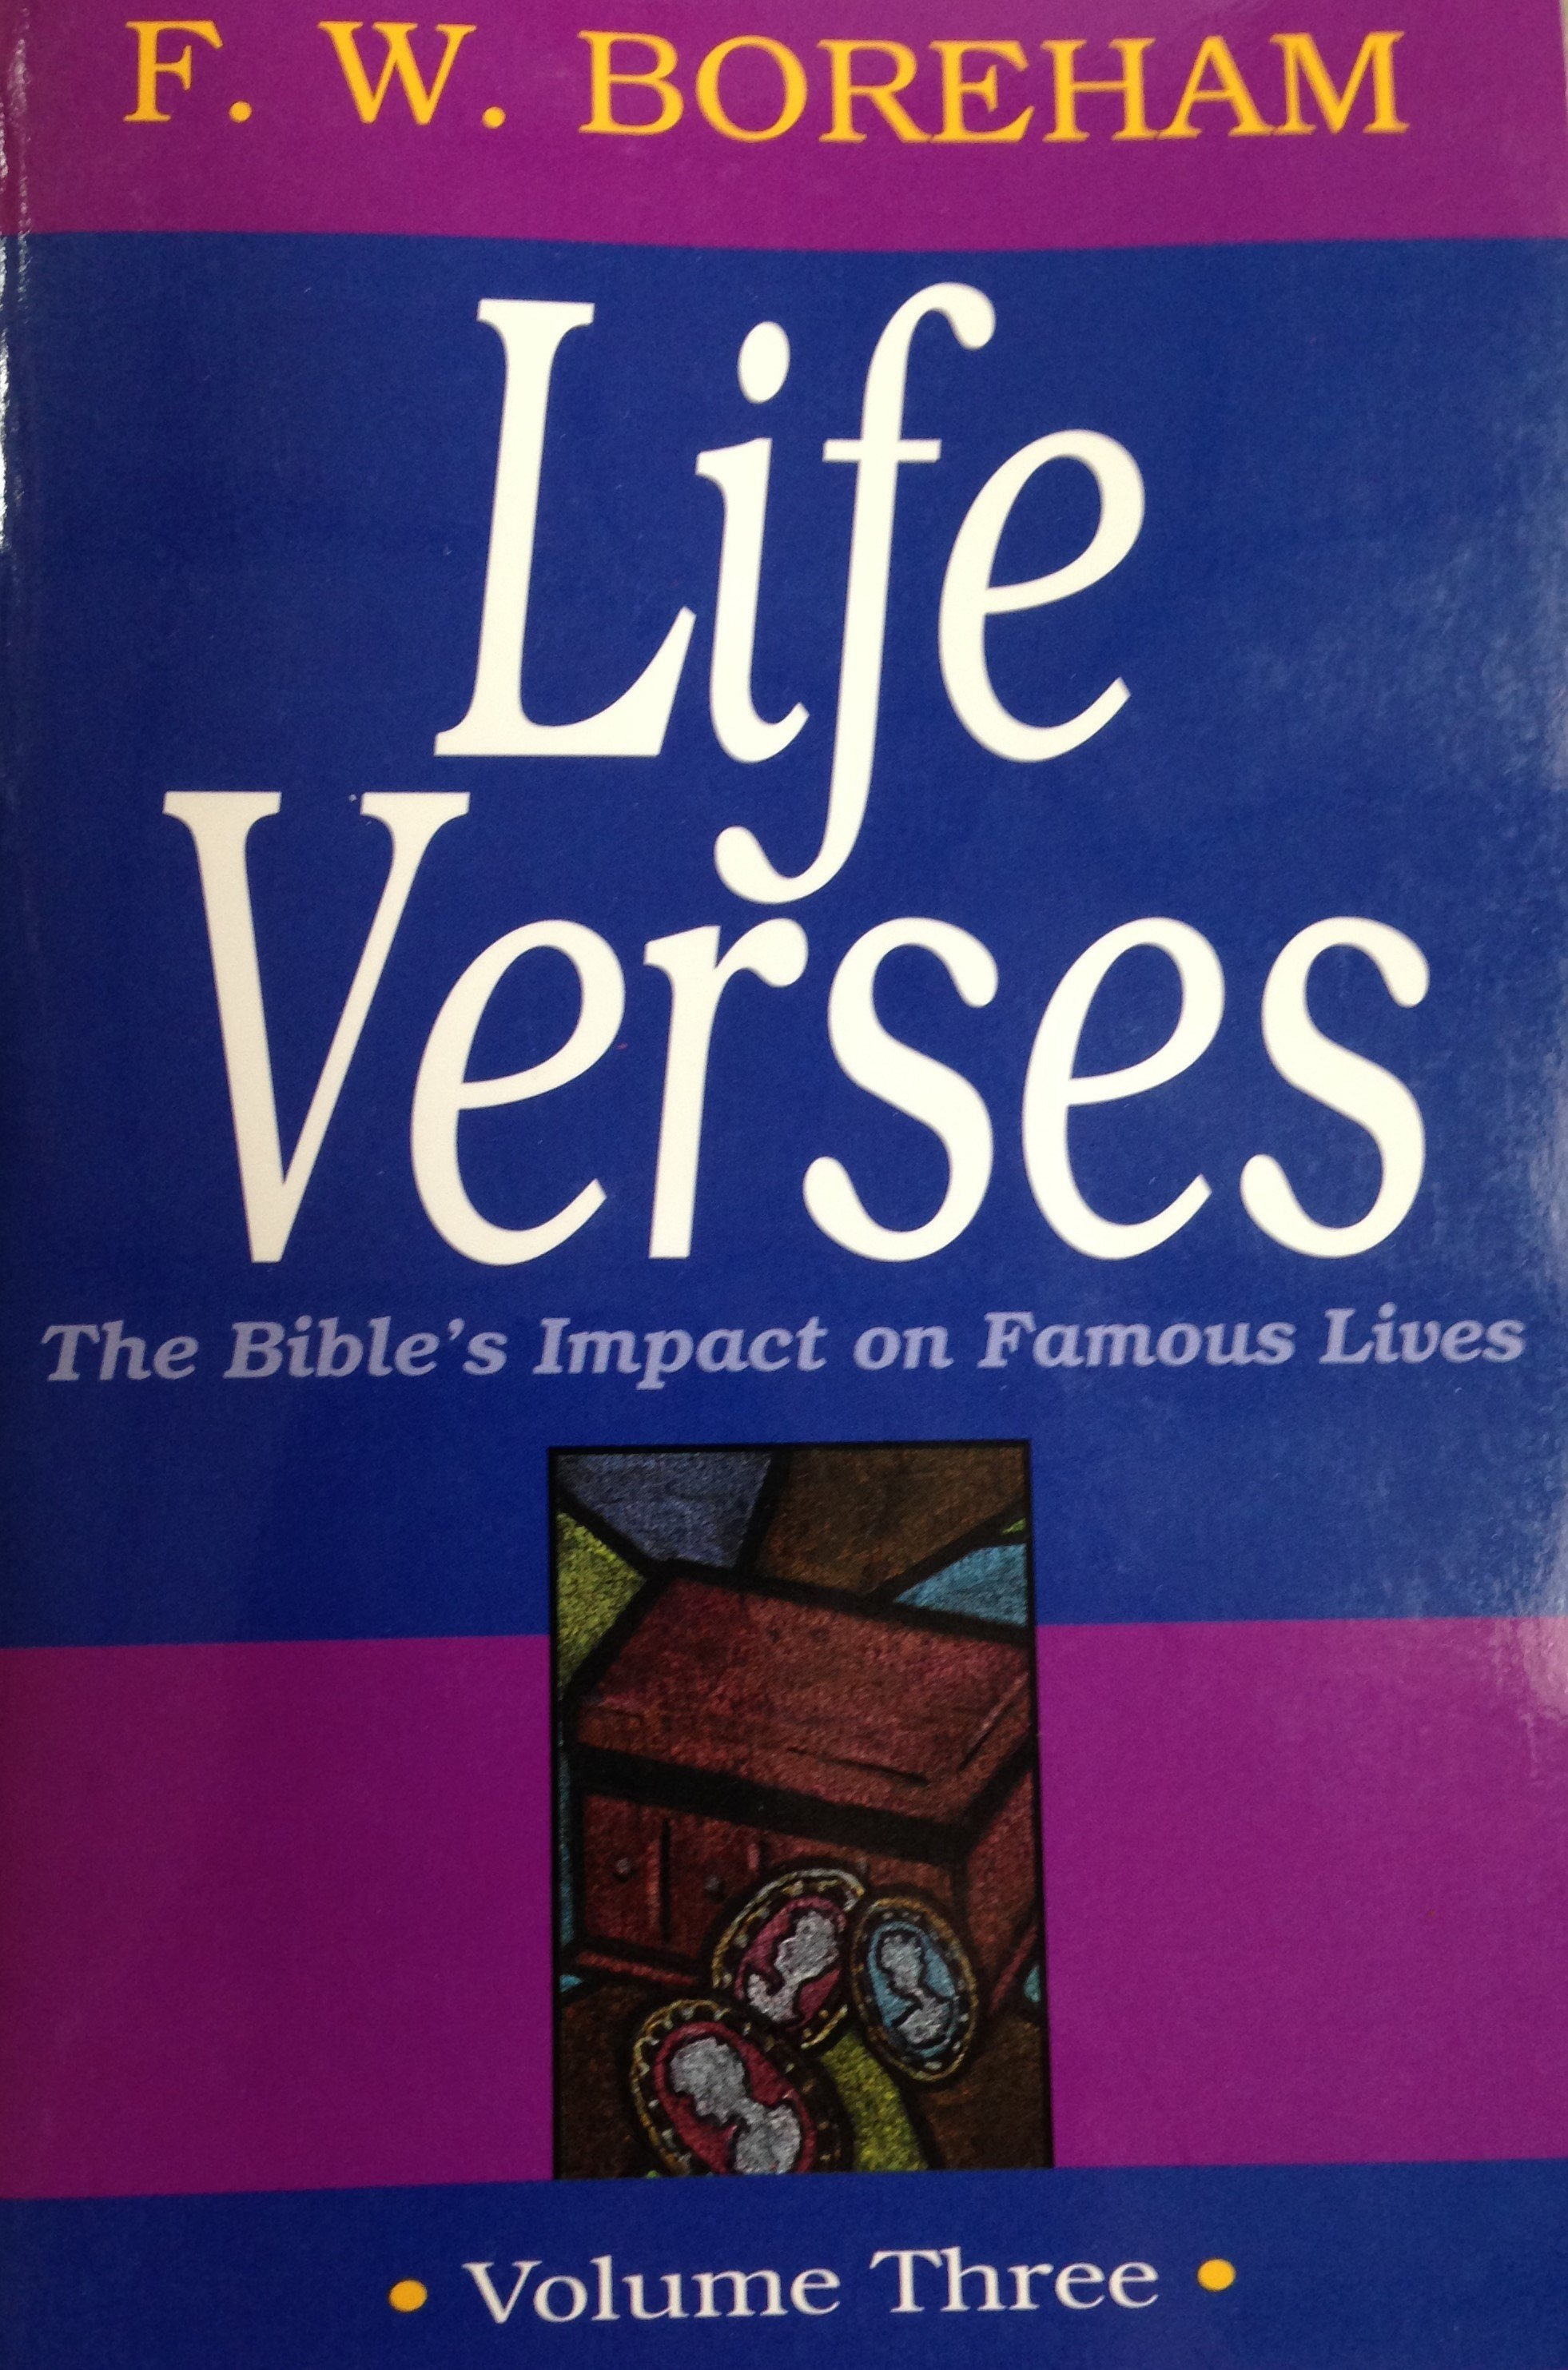 Life Verses:  The Bible's Impact on Famous Lives Volume 3 by F.W. Boreham 00104